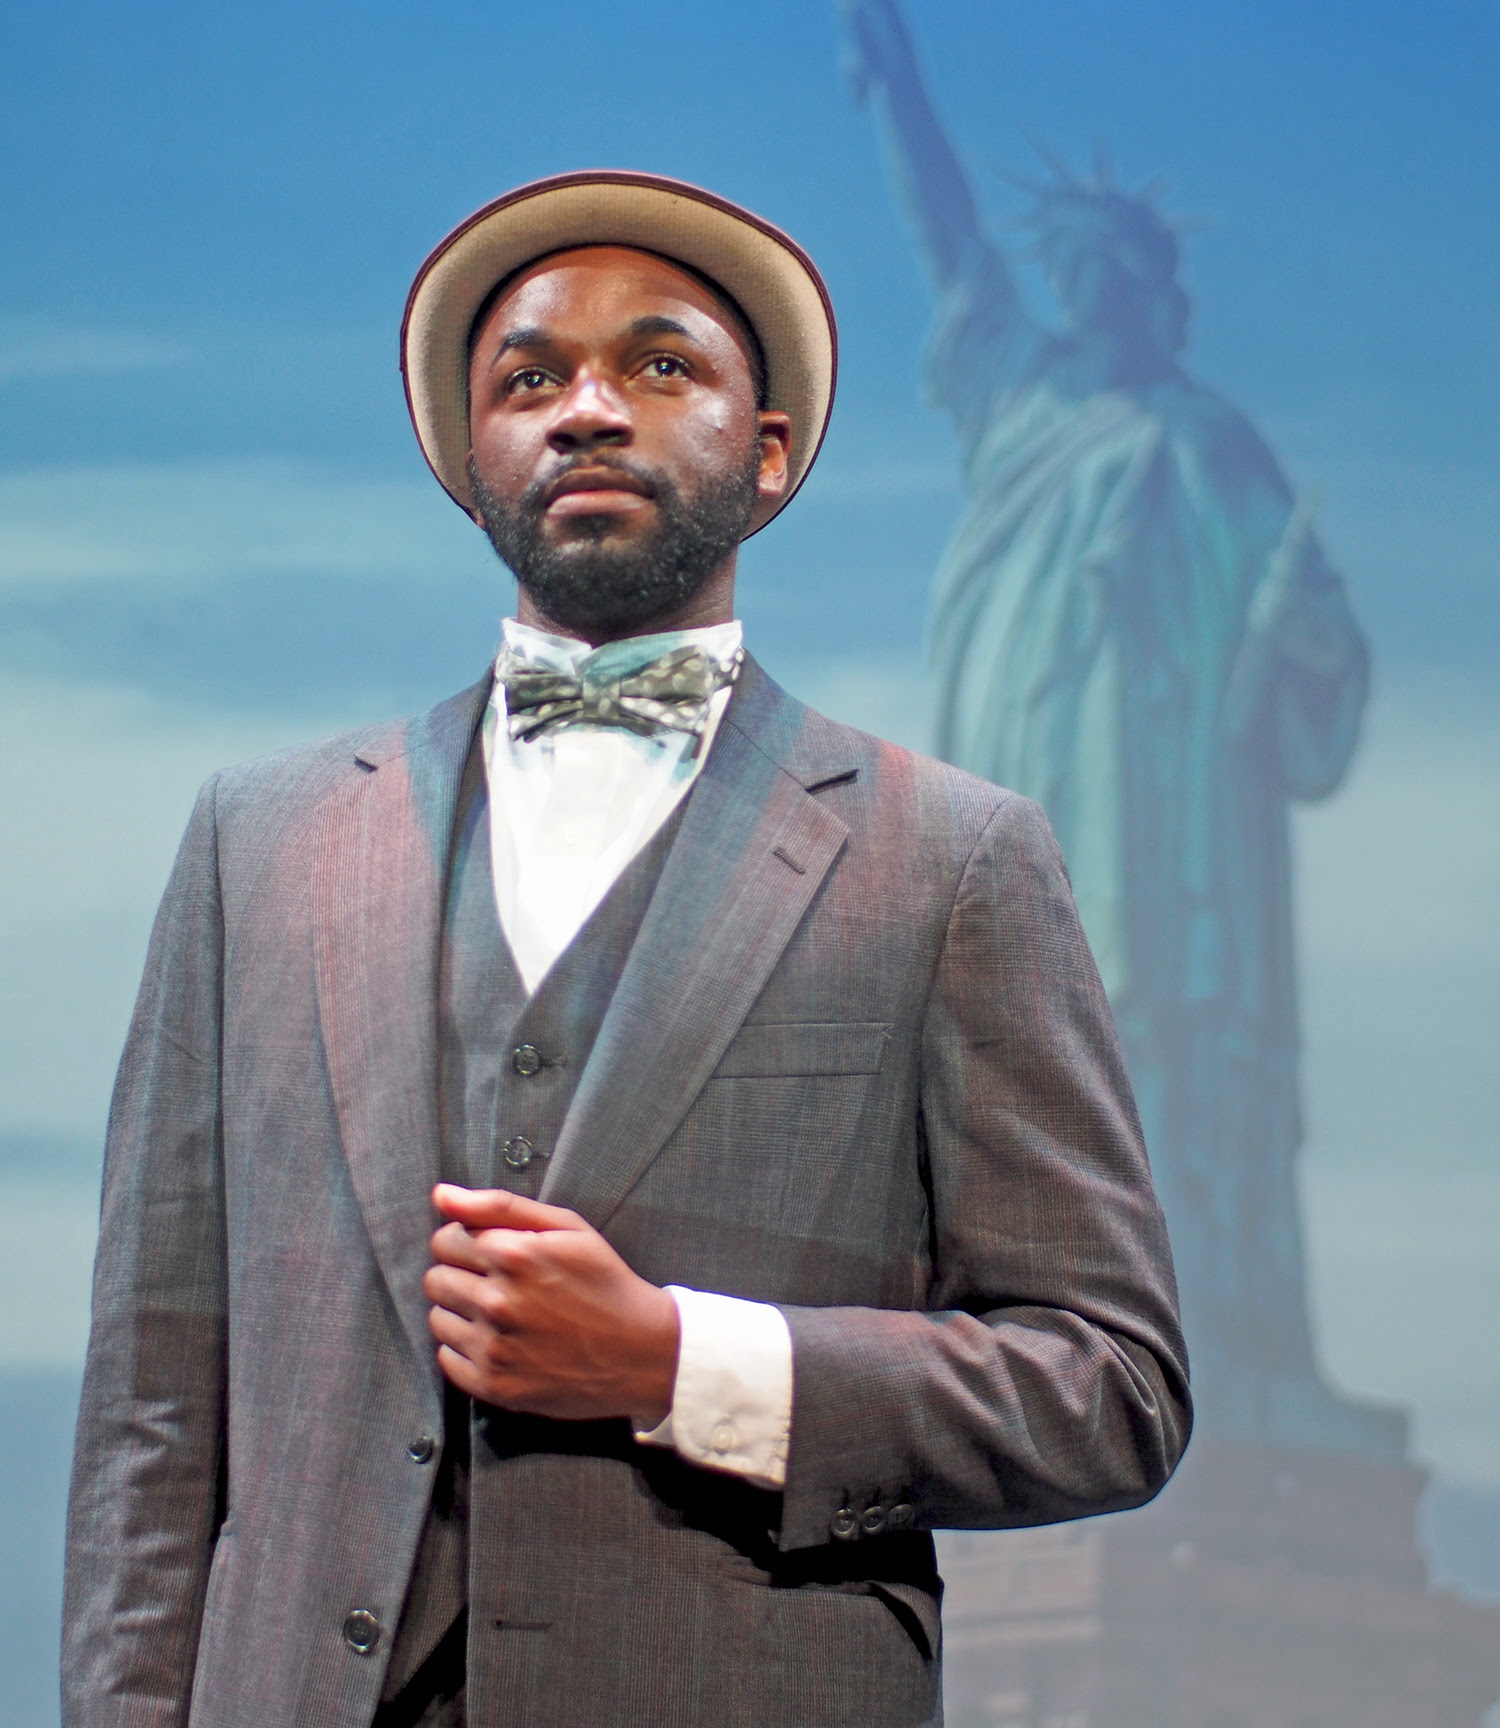 Boston's Todd McNeel Jr. as Booker T. Washington